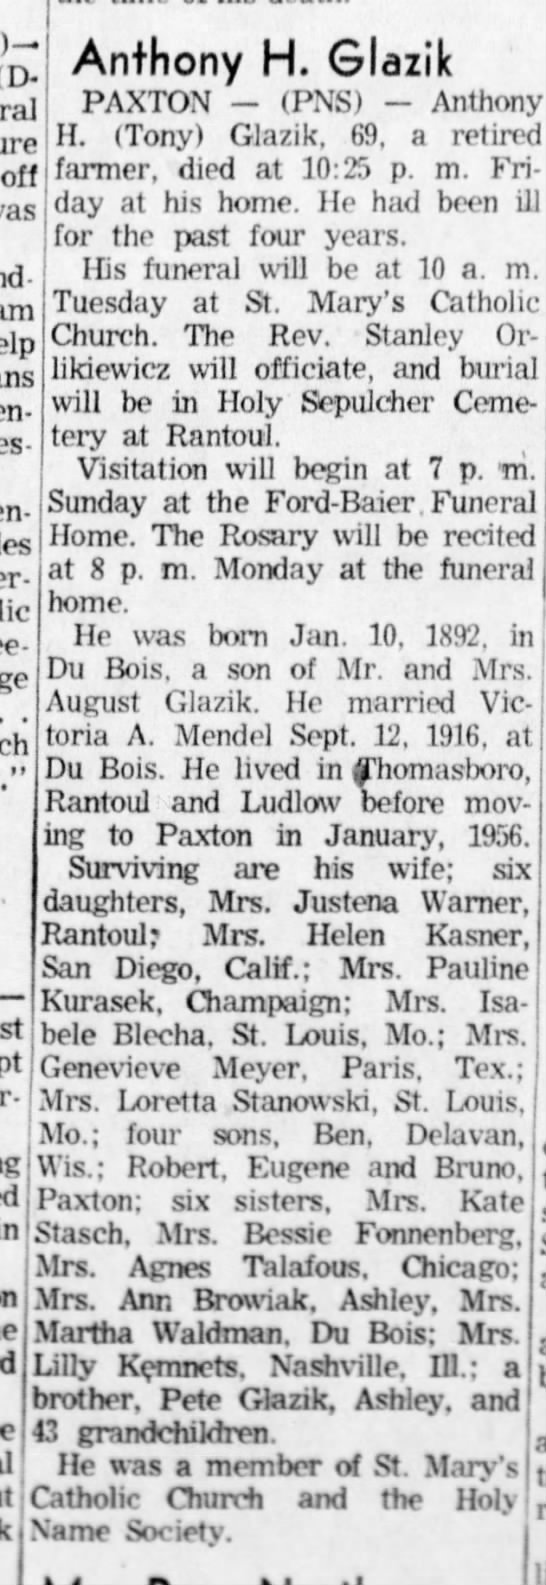 Anthony Glazik Obit  14 May 1961  Sun